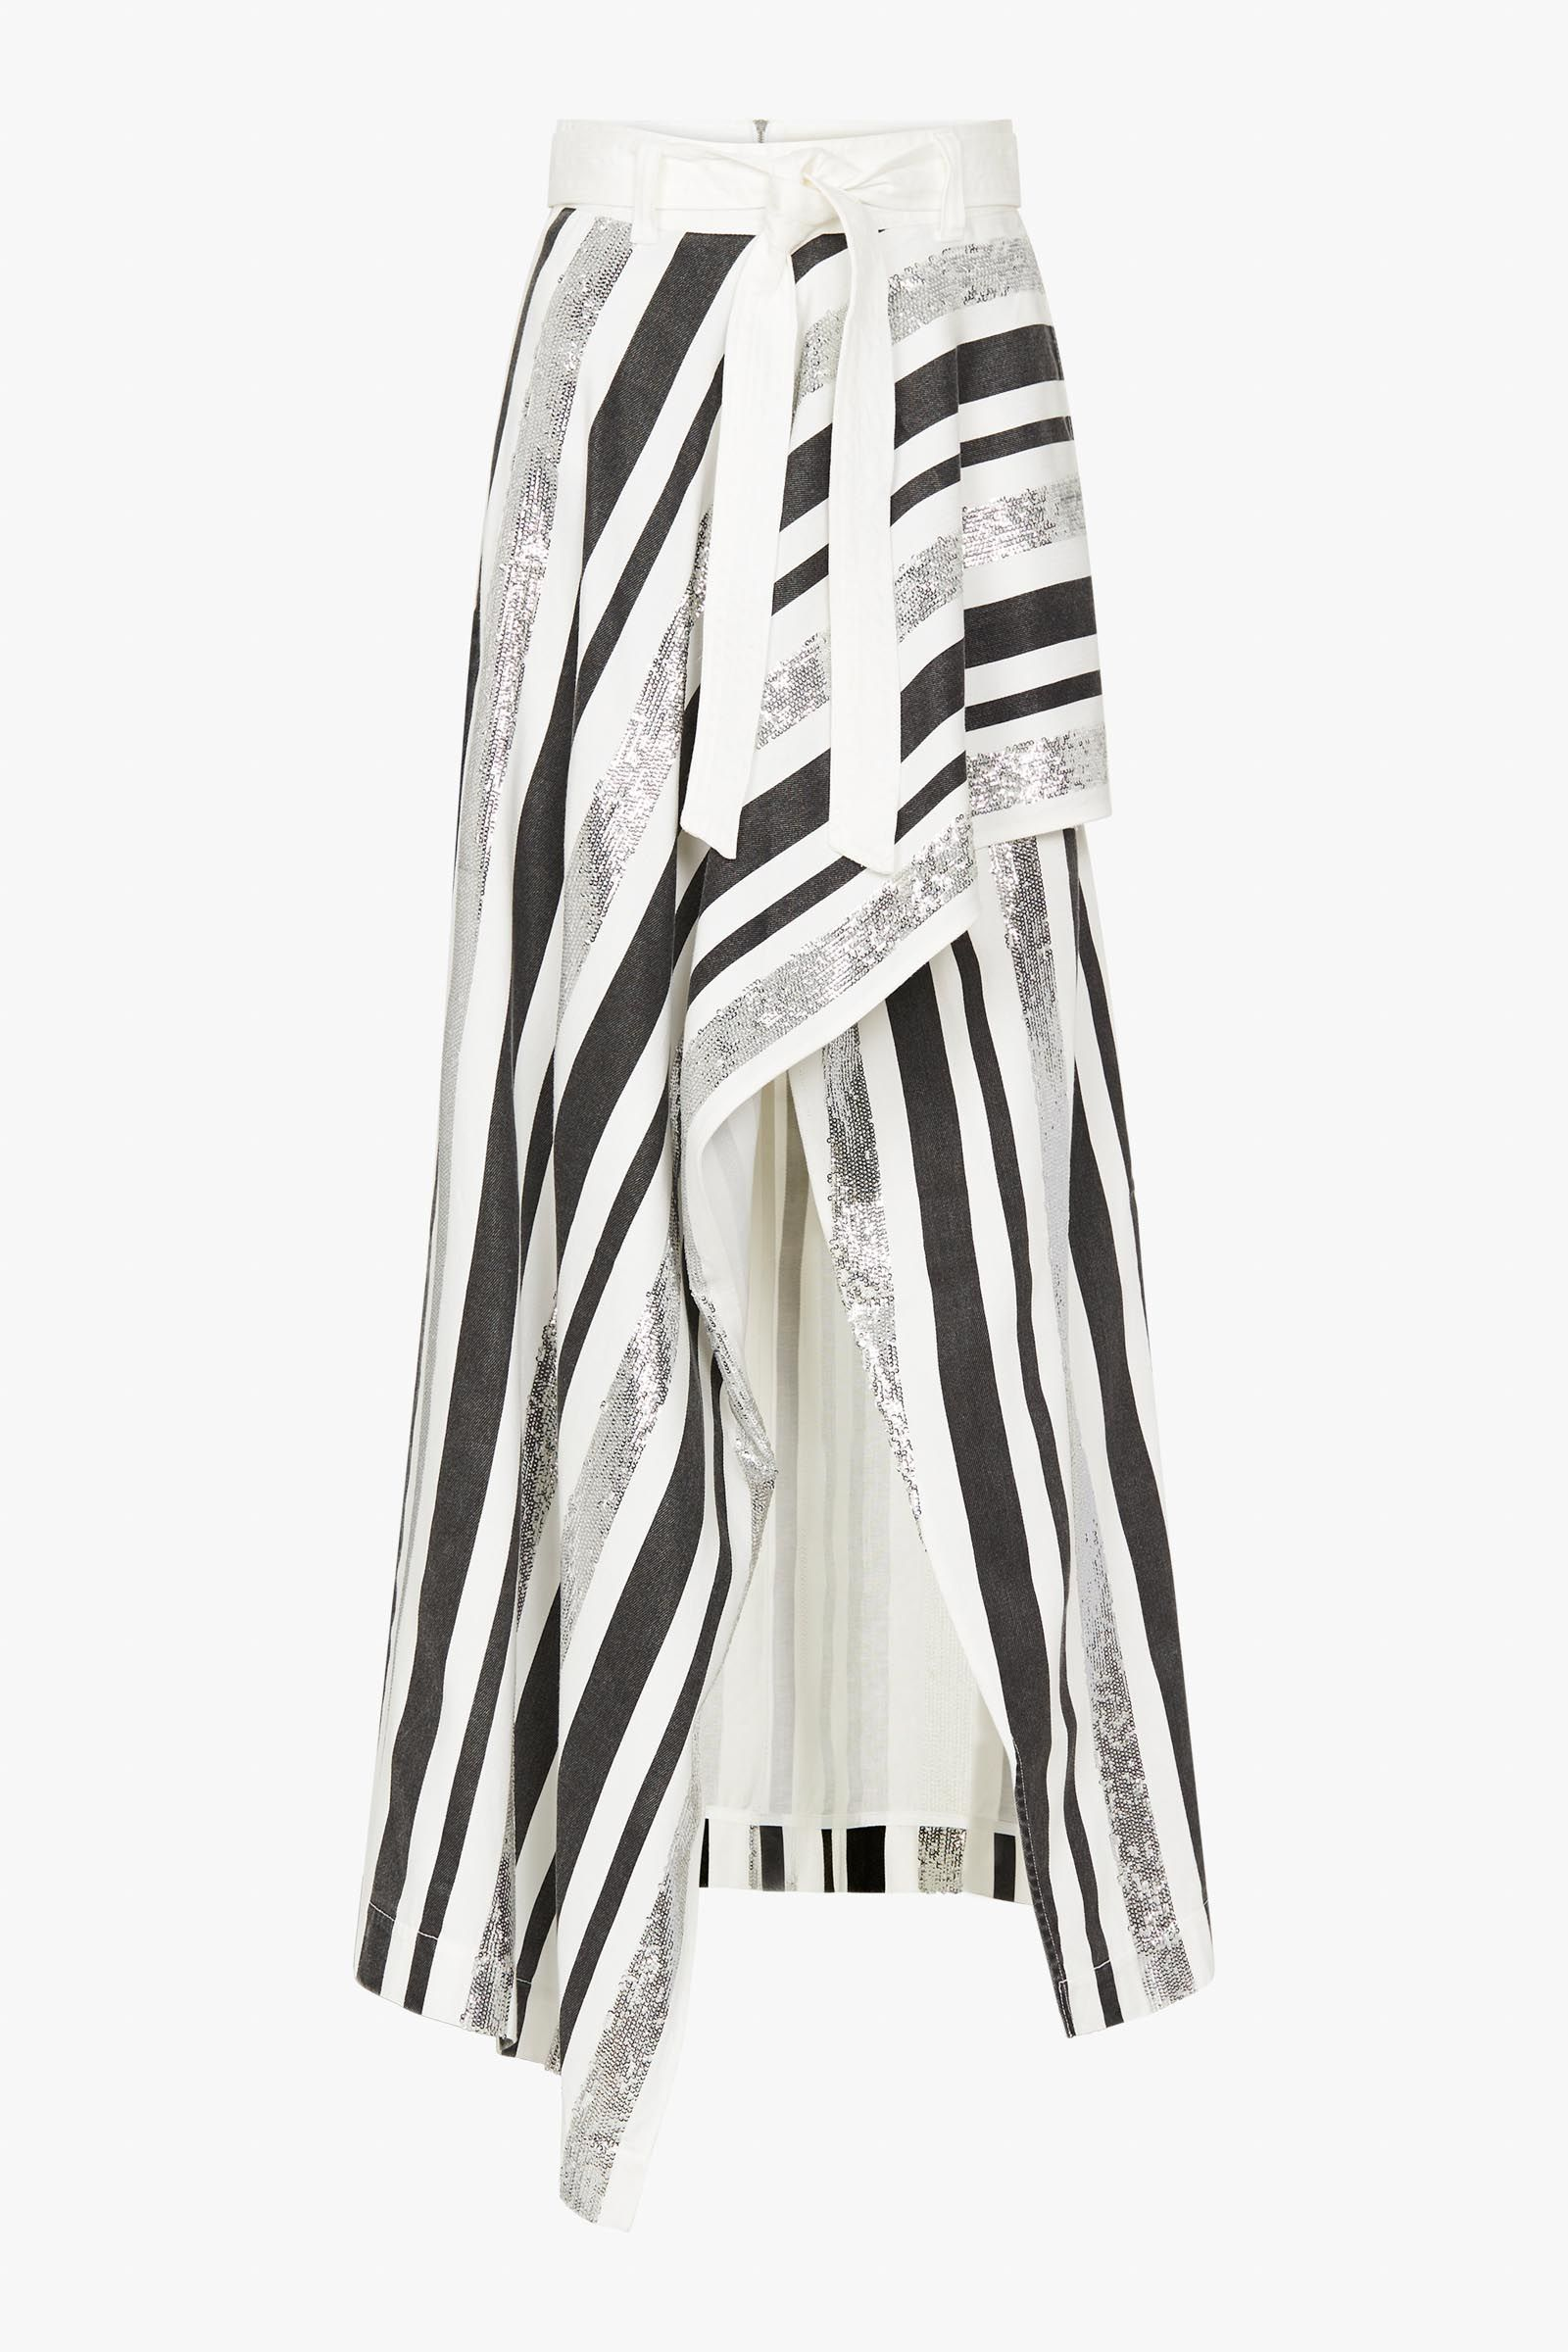 Check Out What S New In Store Http Mikoandmollie Com Products Sass Bide The Front Row Skirt Utm Campaign Social A Clothes Design Front Row Clothes For Women